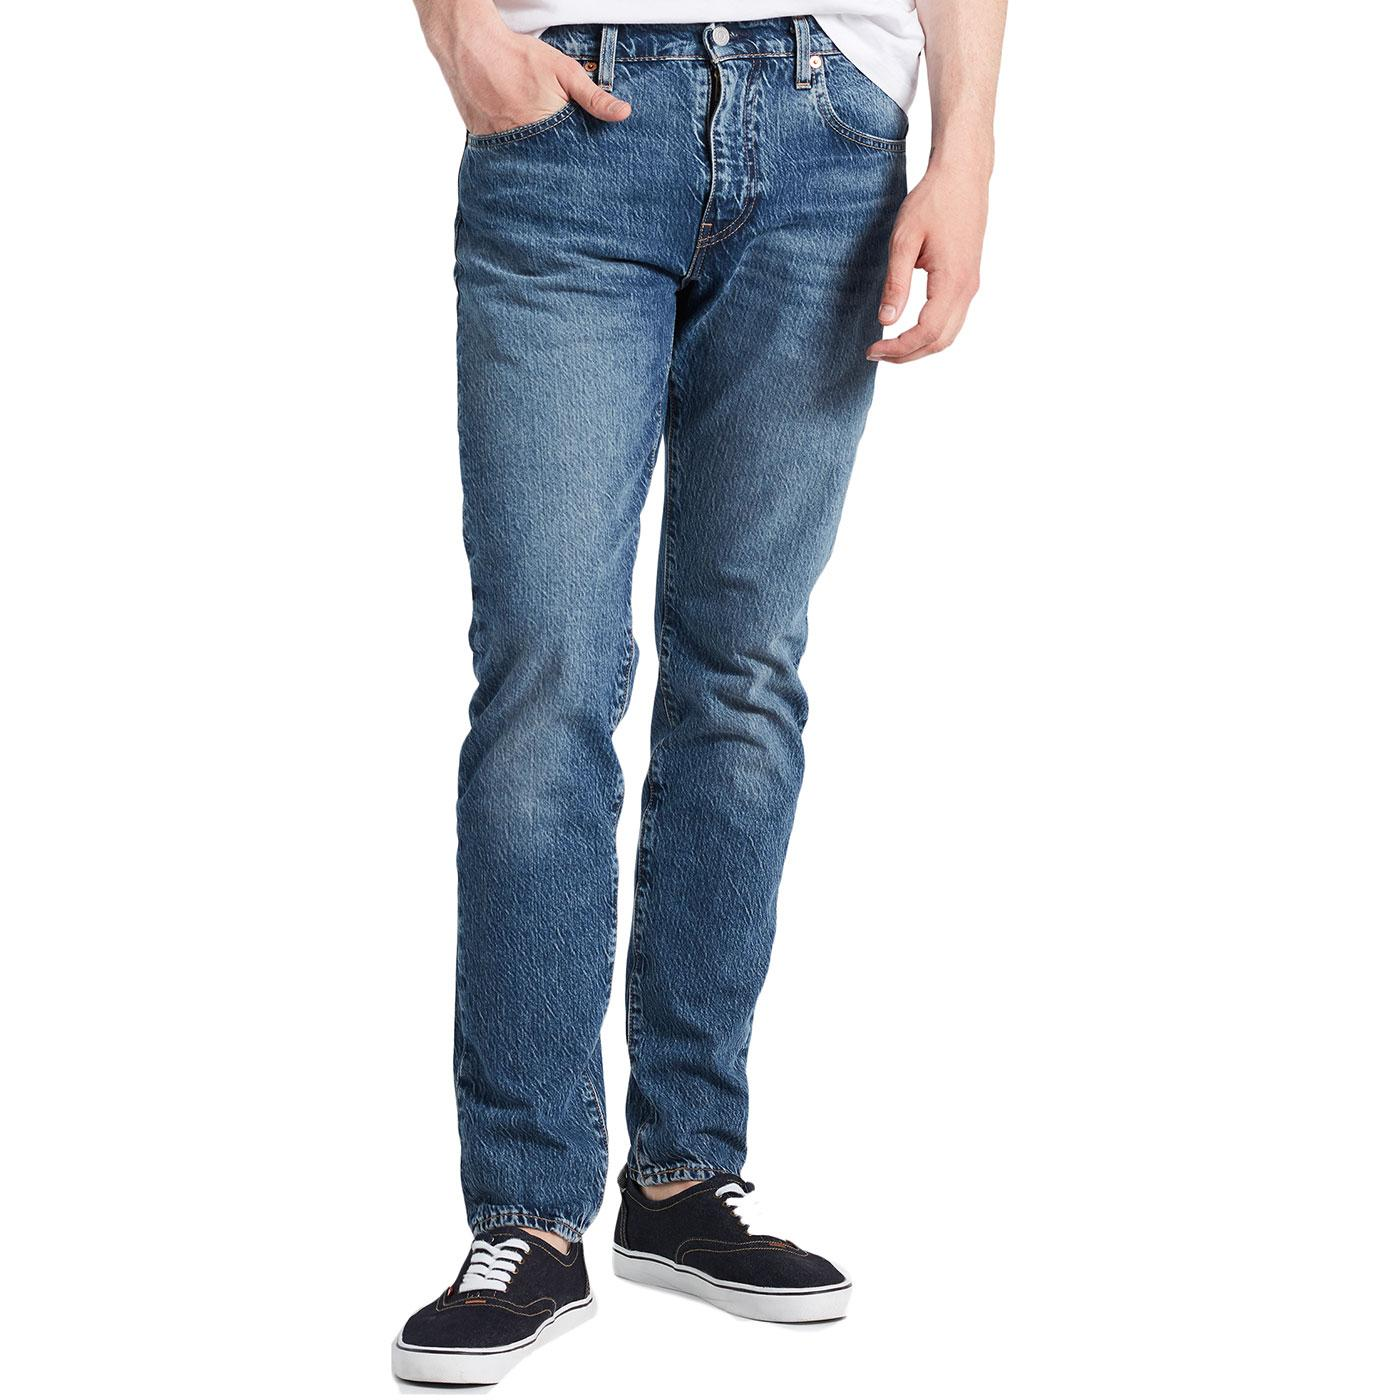 LEVI'S 512 Slim Taper Denim Jeans (Marcel Dark)